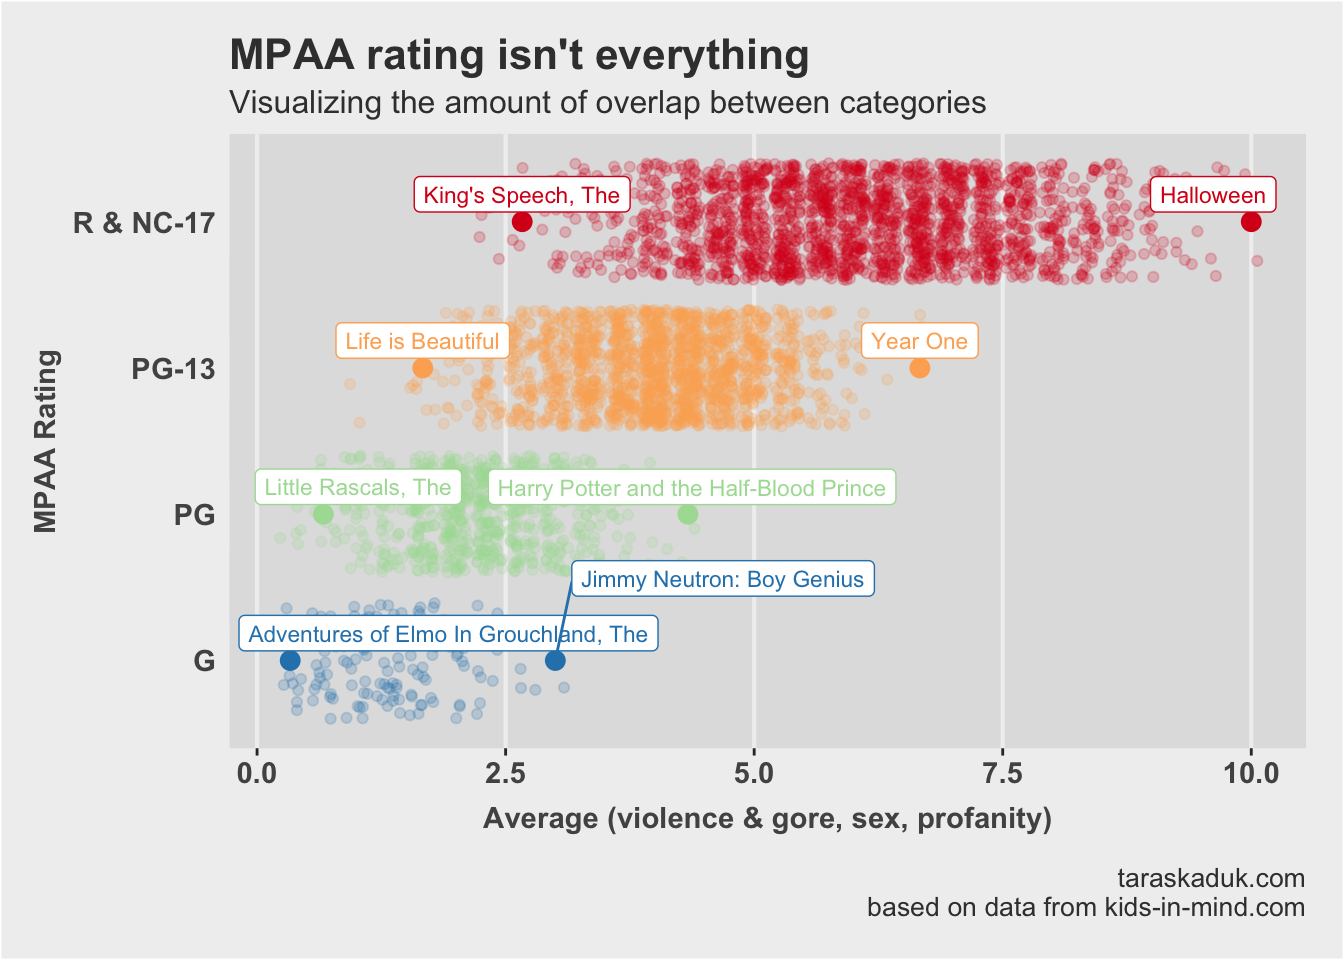 Do MPAA movie ratings mean anything? https://d33wubrfki0l68.cloudfront.net/e88b57ec0be86841f04d2e59c536f7626ea36b00/b3261/posts/mpaa/mpaa-1.png